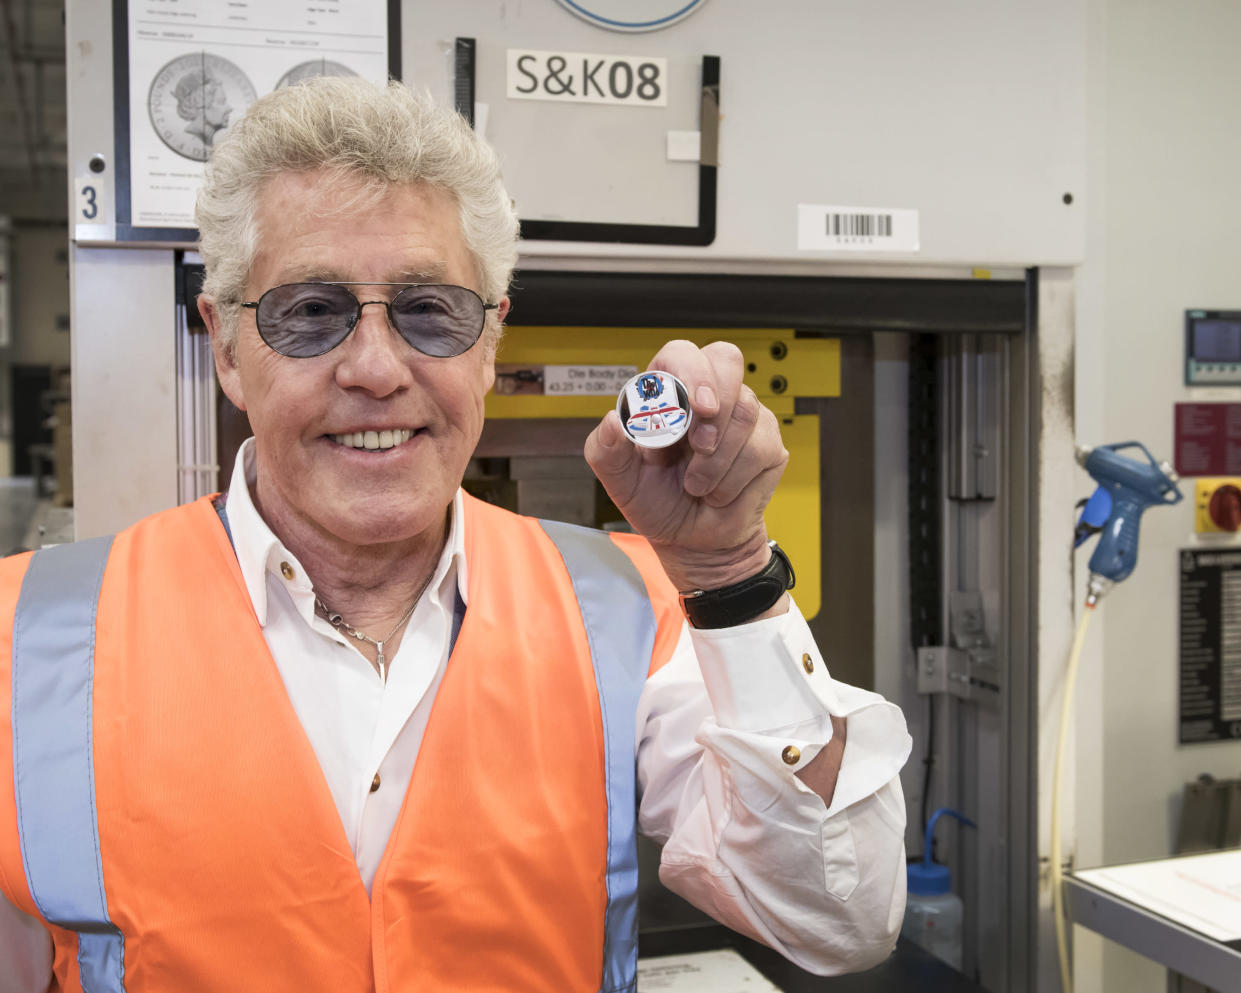 Roger Daltrey visited the Mint to mark the new collection. (Royal Mint)